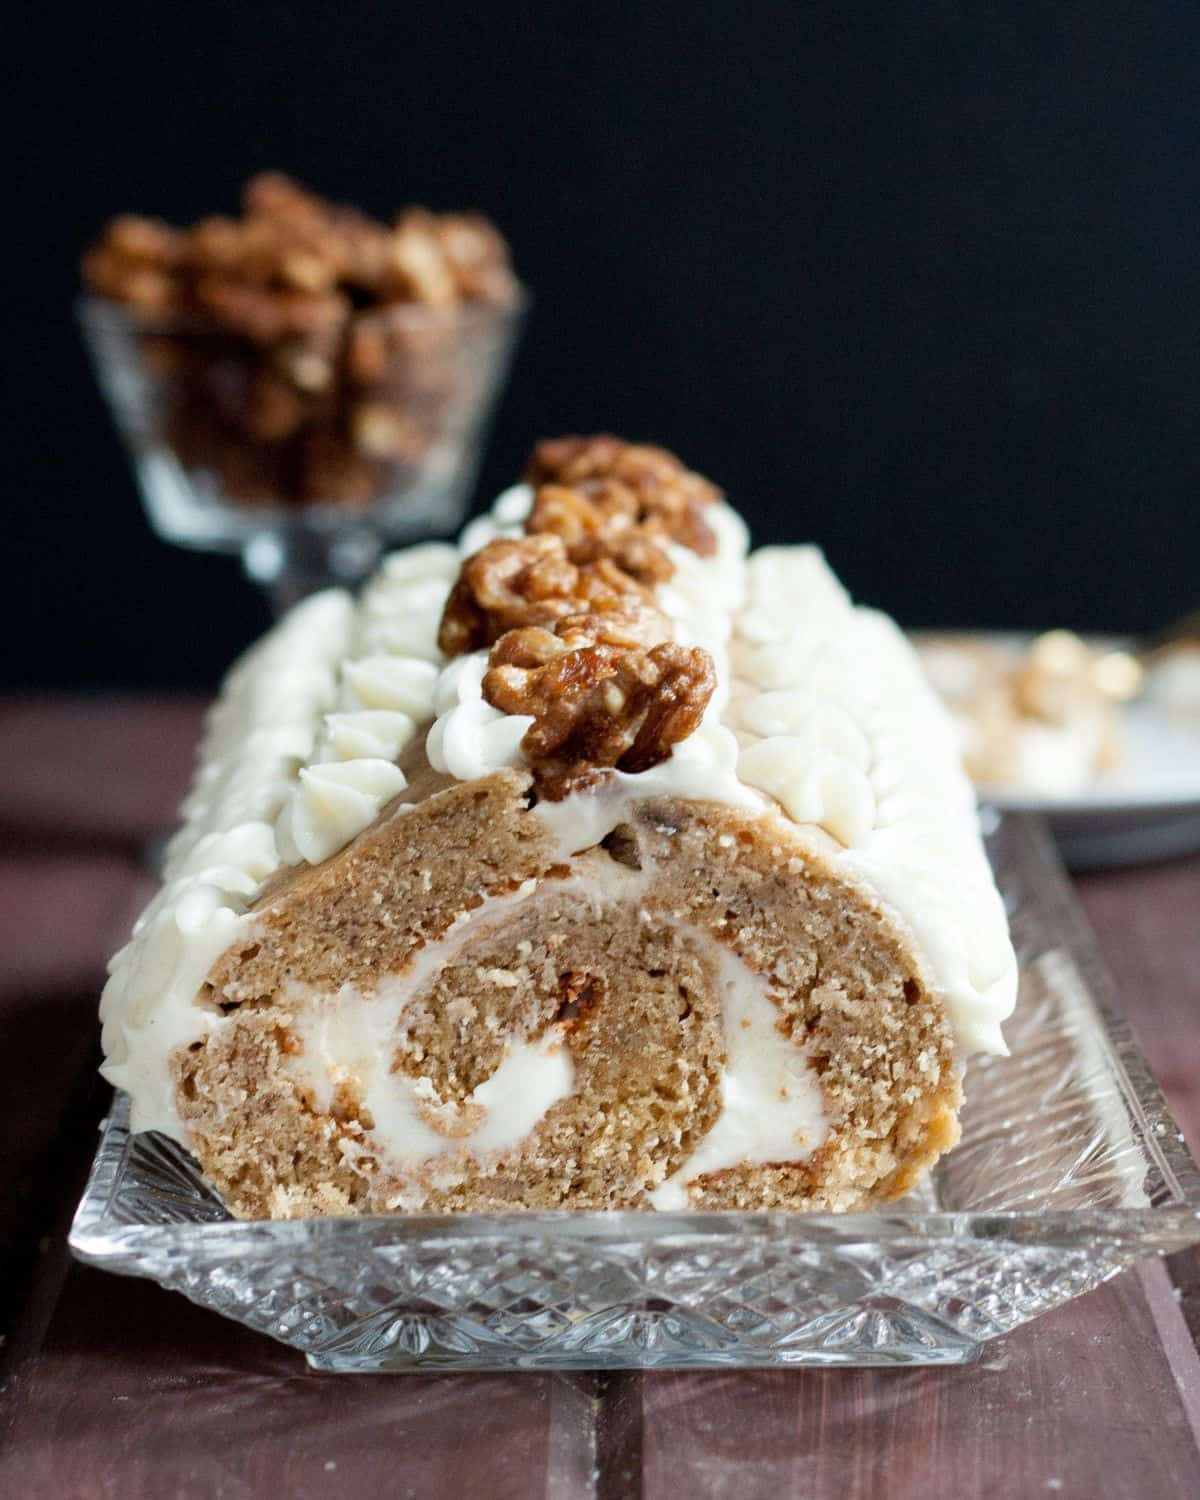 A new way to eat banana bread! Traditional banana bread turned into a roll cake, filled with cream cheese frosting, and topped with balsamic glazed walnuts. Recipe on GoodieGodmother.com